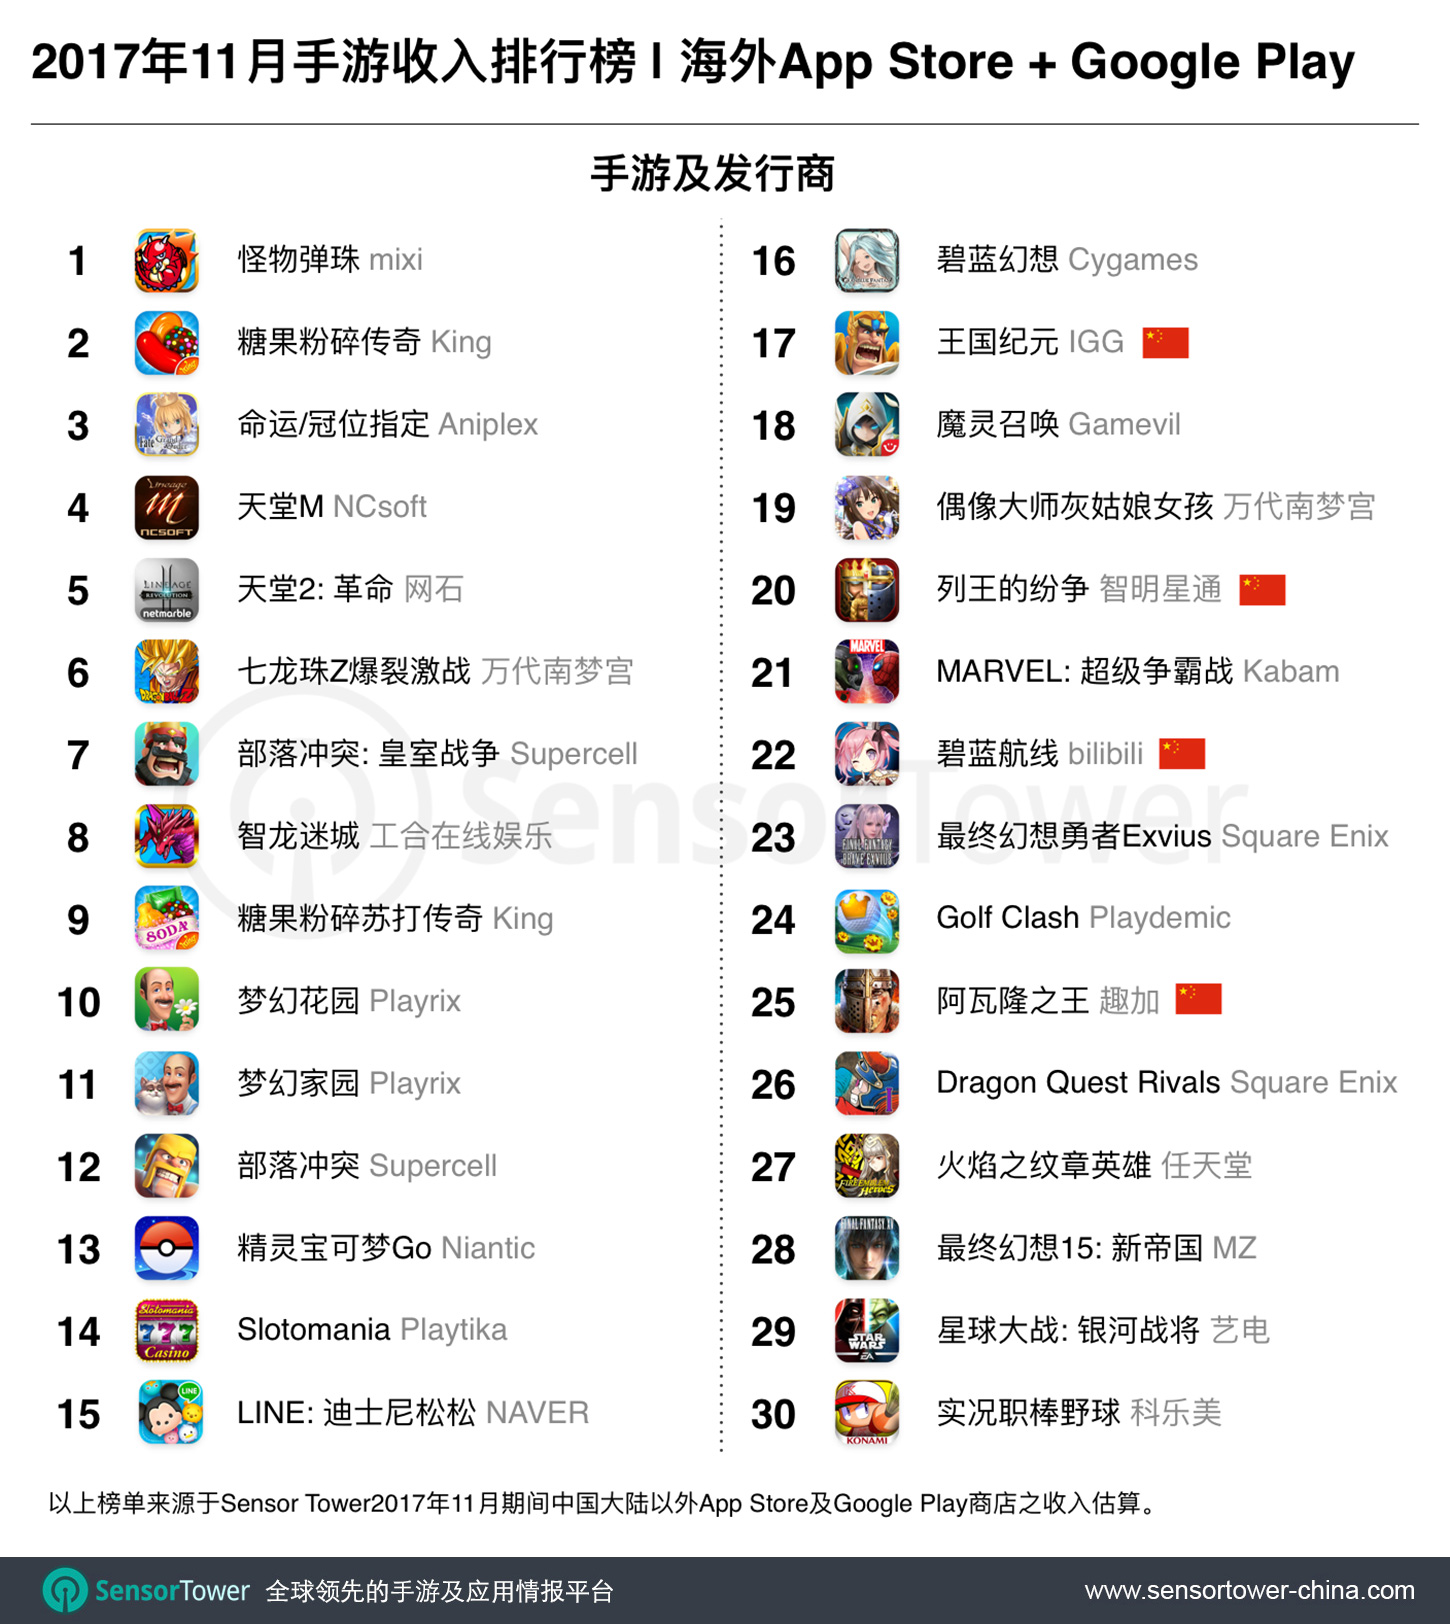 Nov 2017 Top 30 Grossing Games Outside China